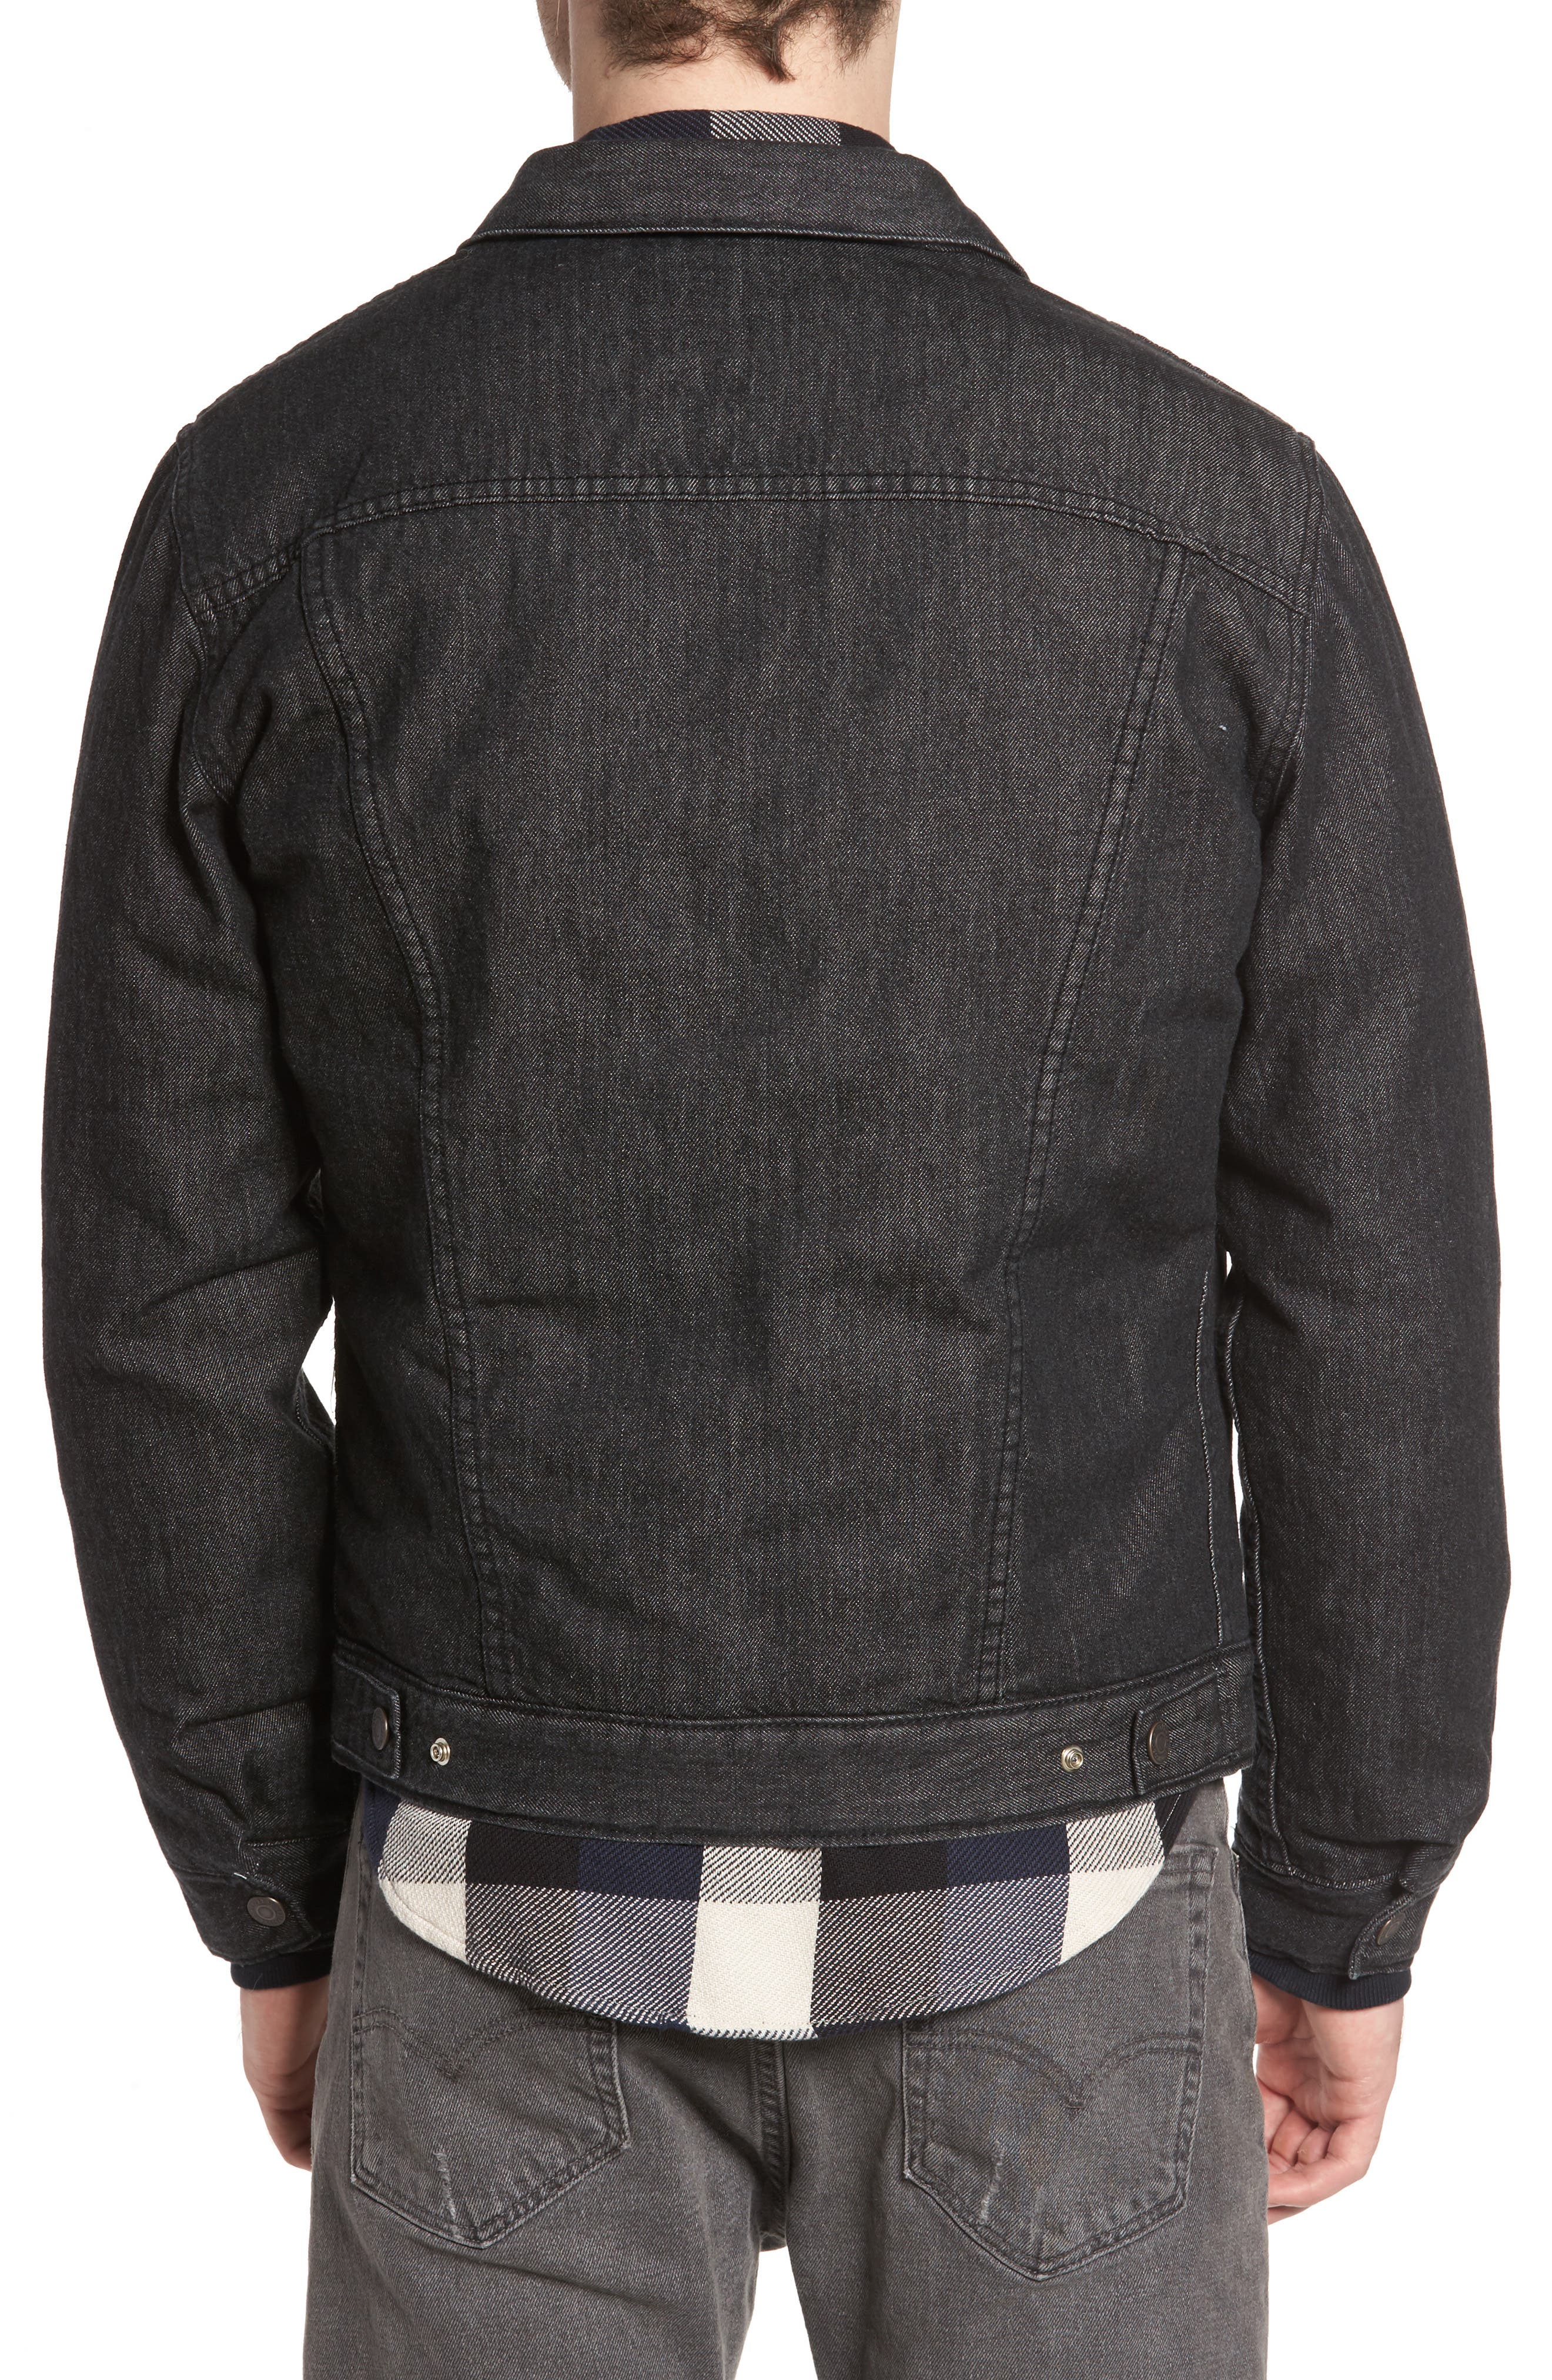 Down Insulated Trucker Jacket,                             Alternate thumbnail 2, color,                             001